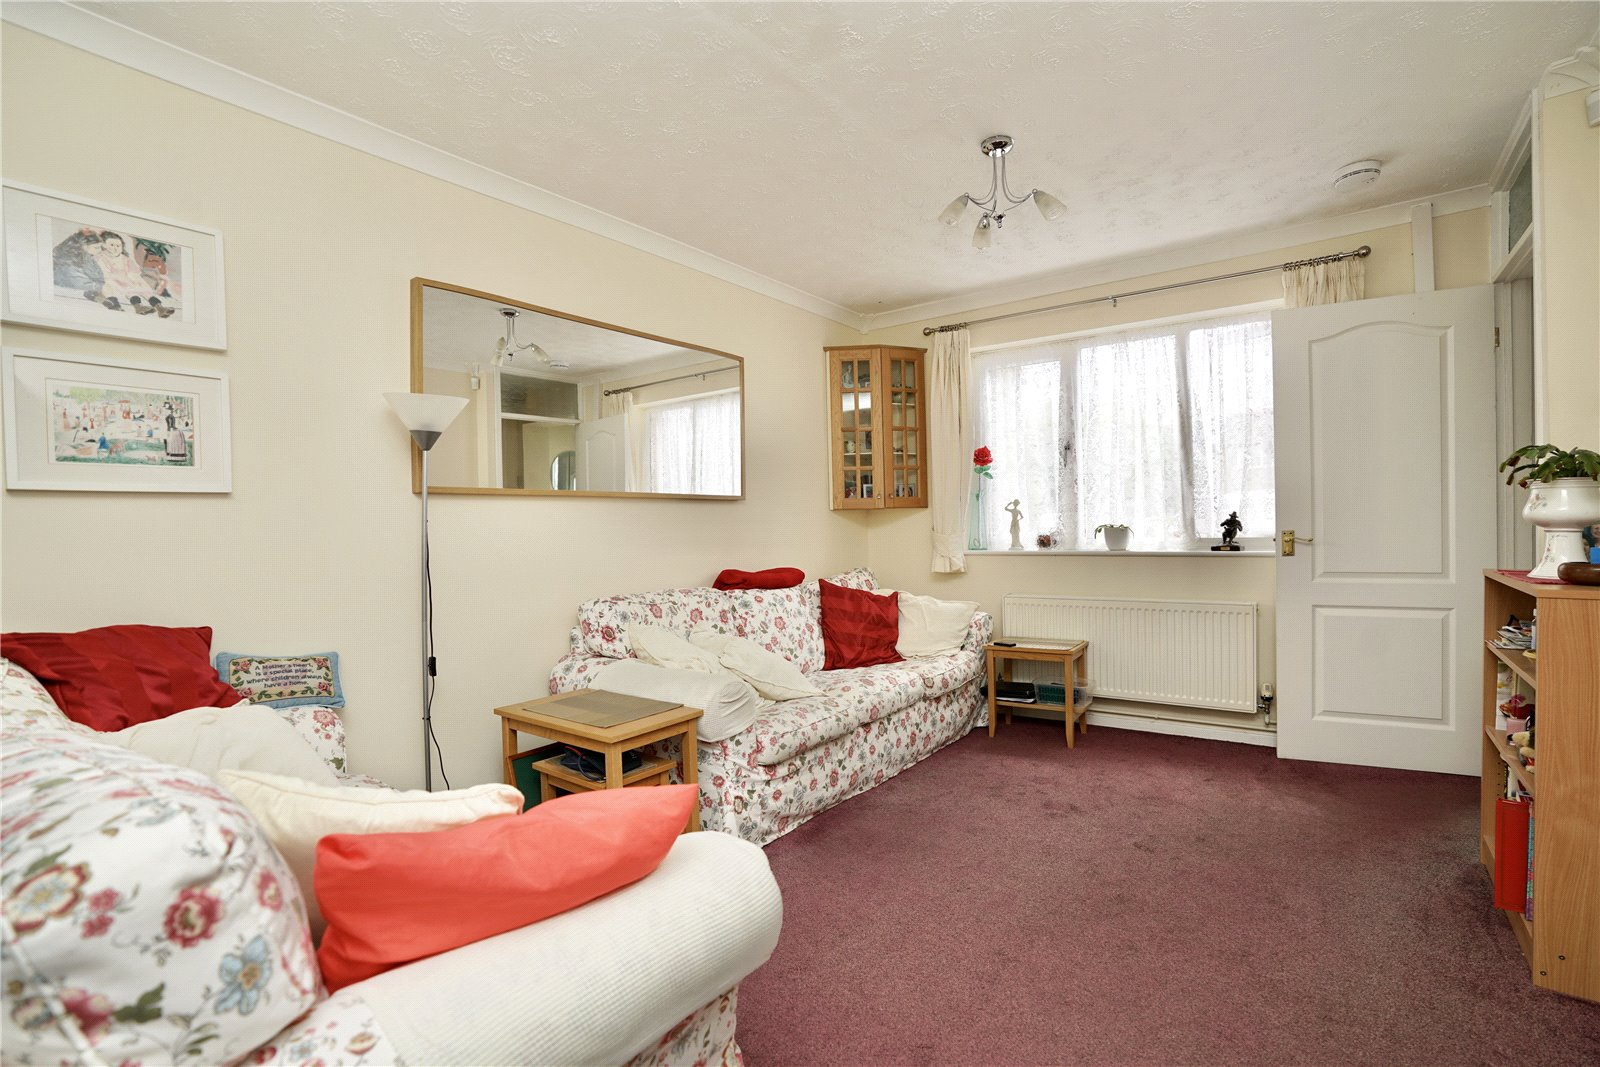 3 bed house for sale in Cunningham Way, Eaton Socon 3